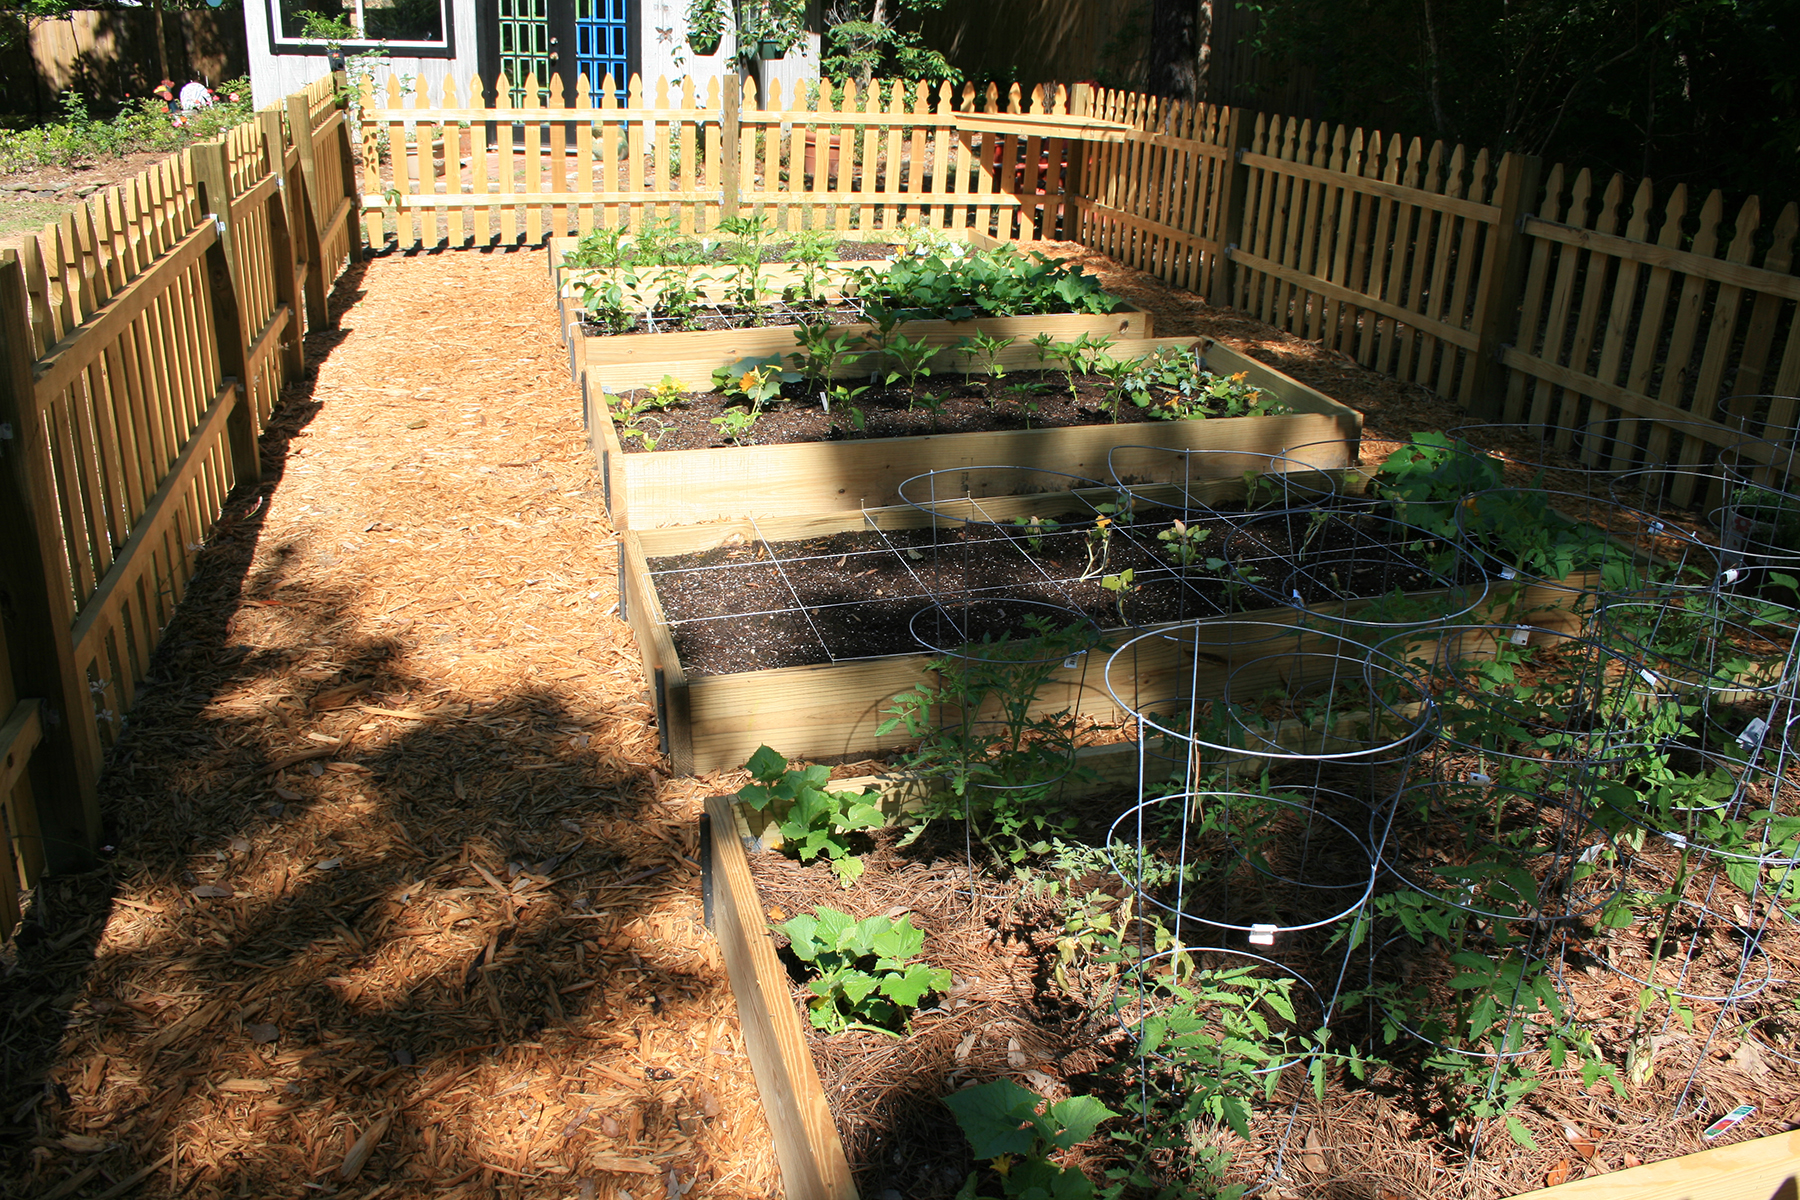 Raised beds constructed using two-by-six boards creates a neat and ordered look to the garden.